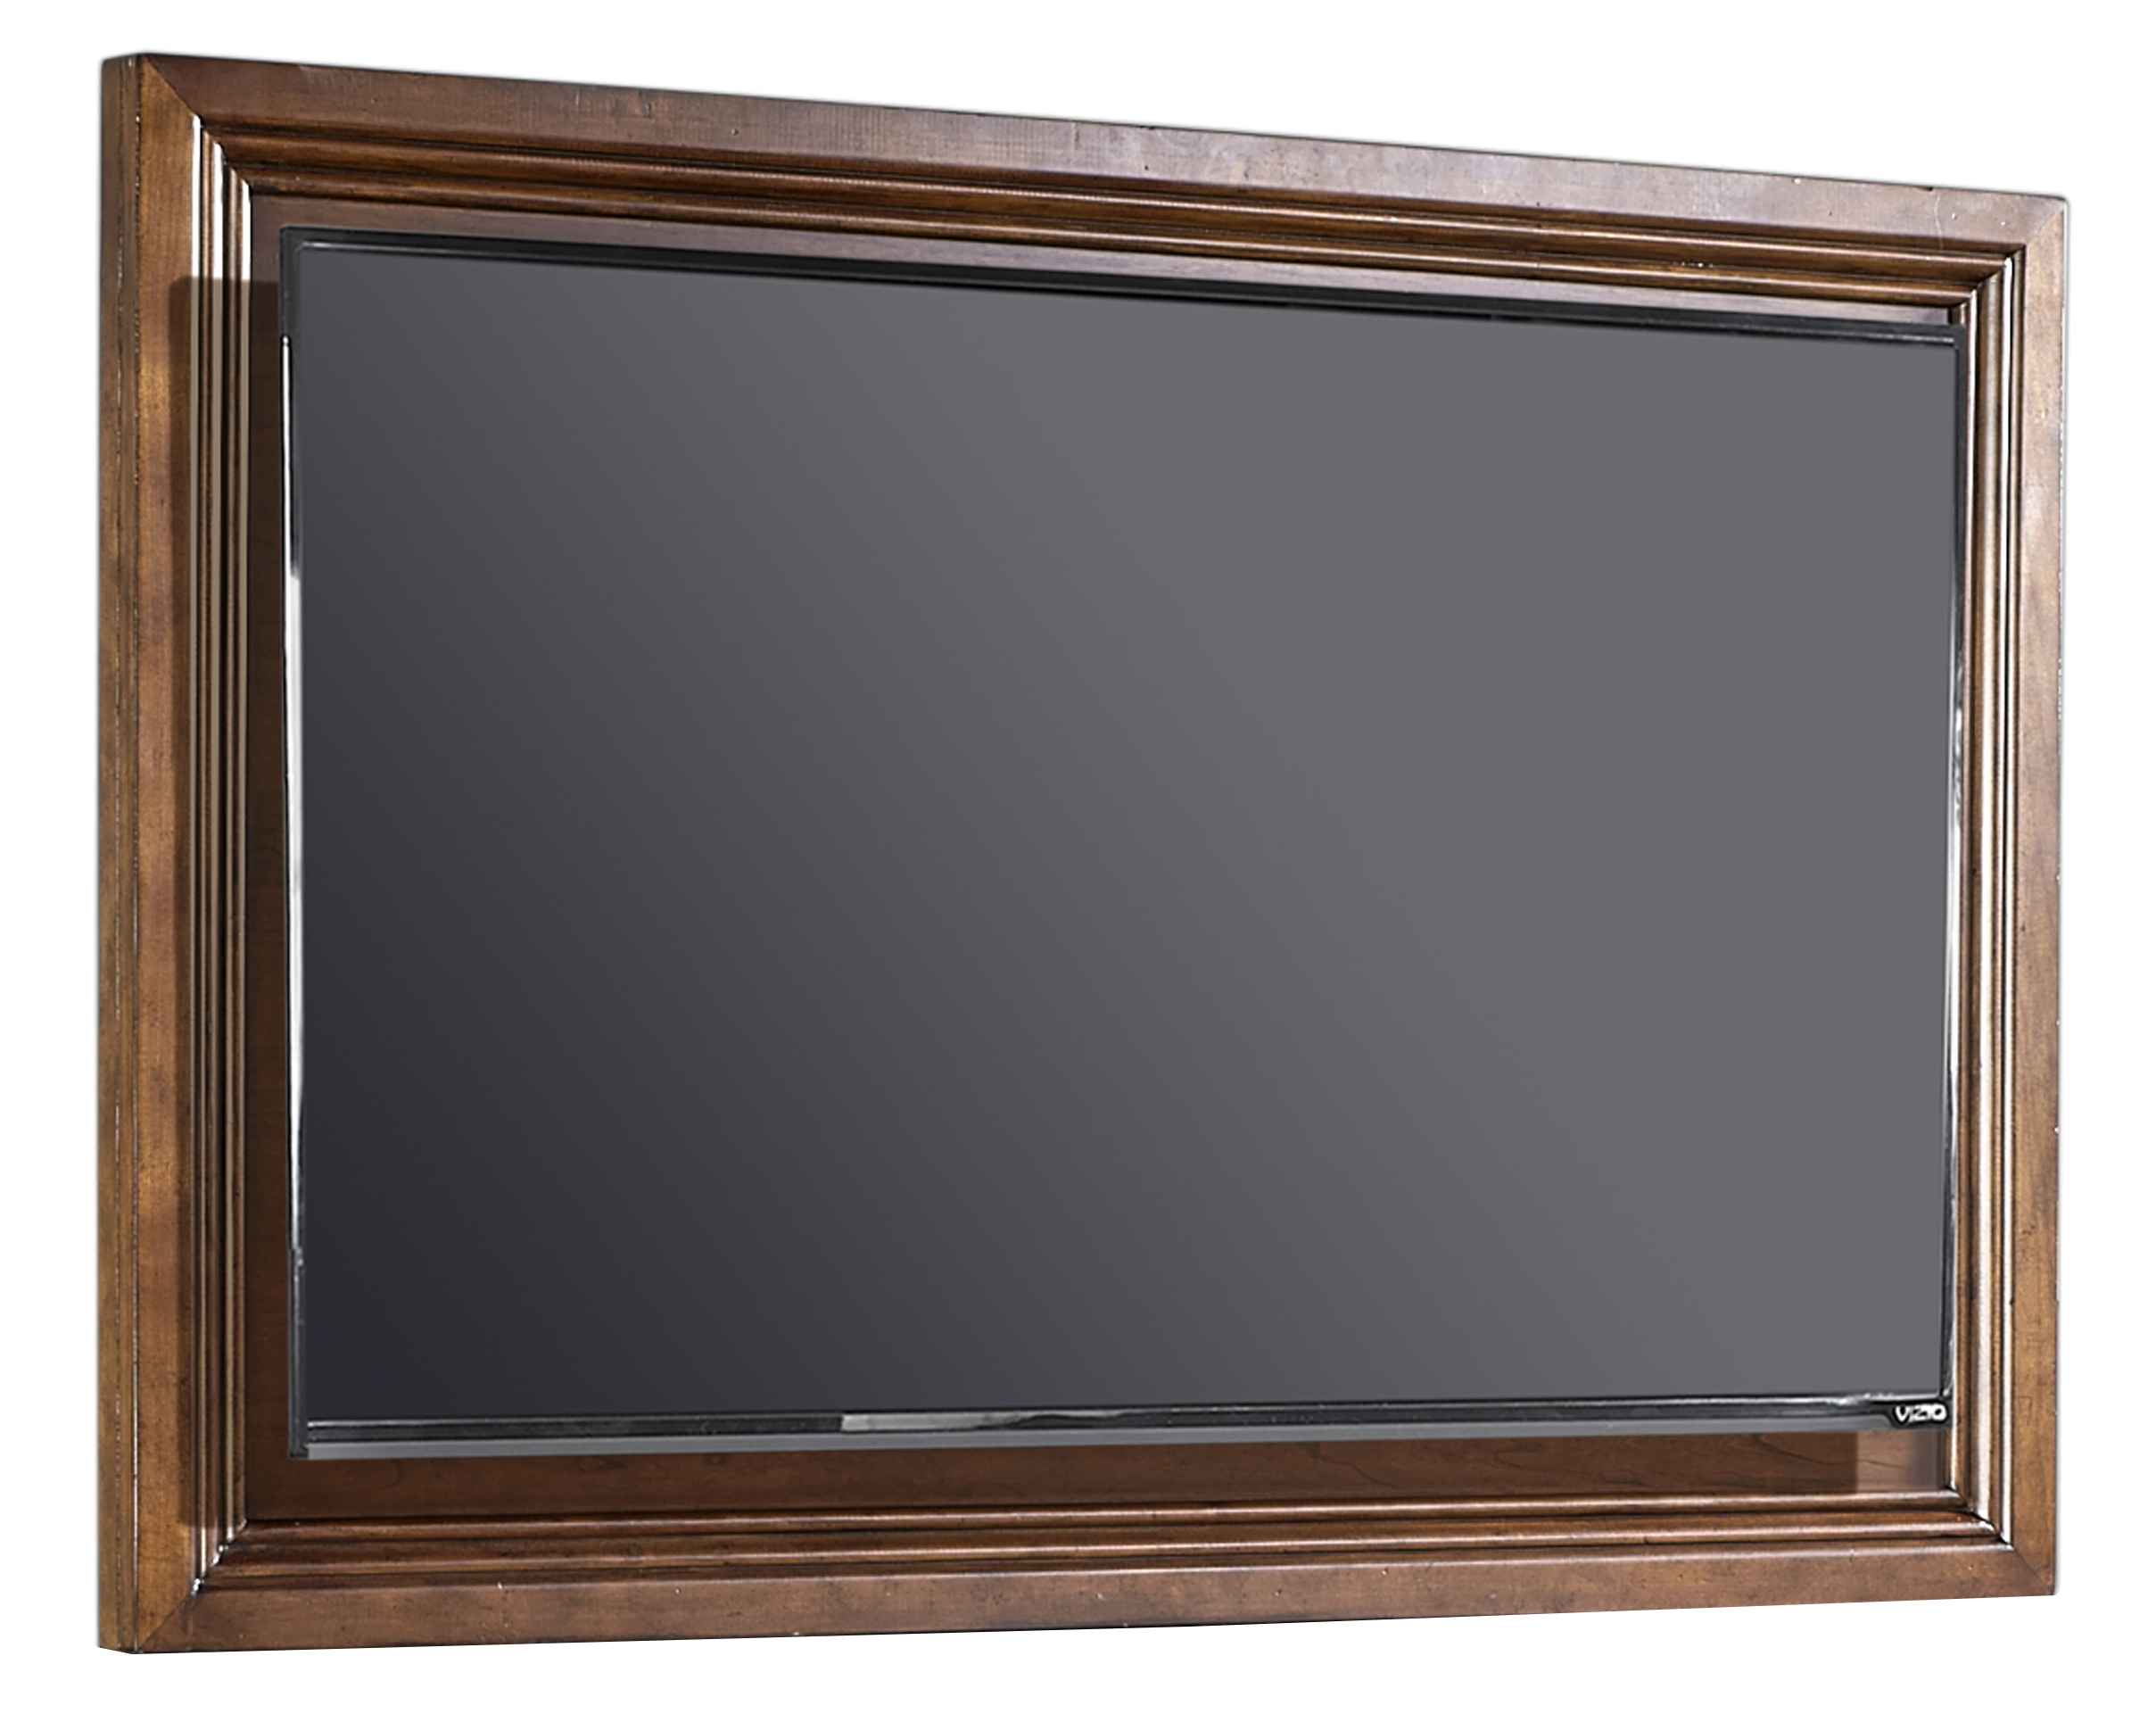 Dresser TV Mounts